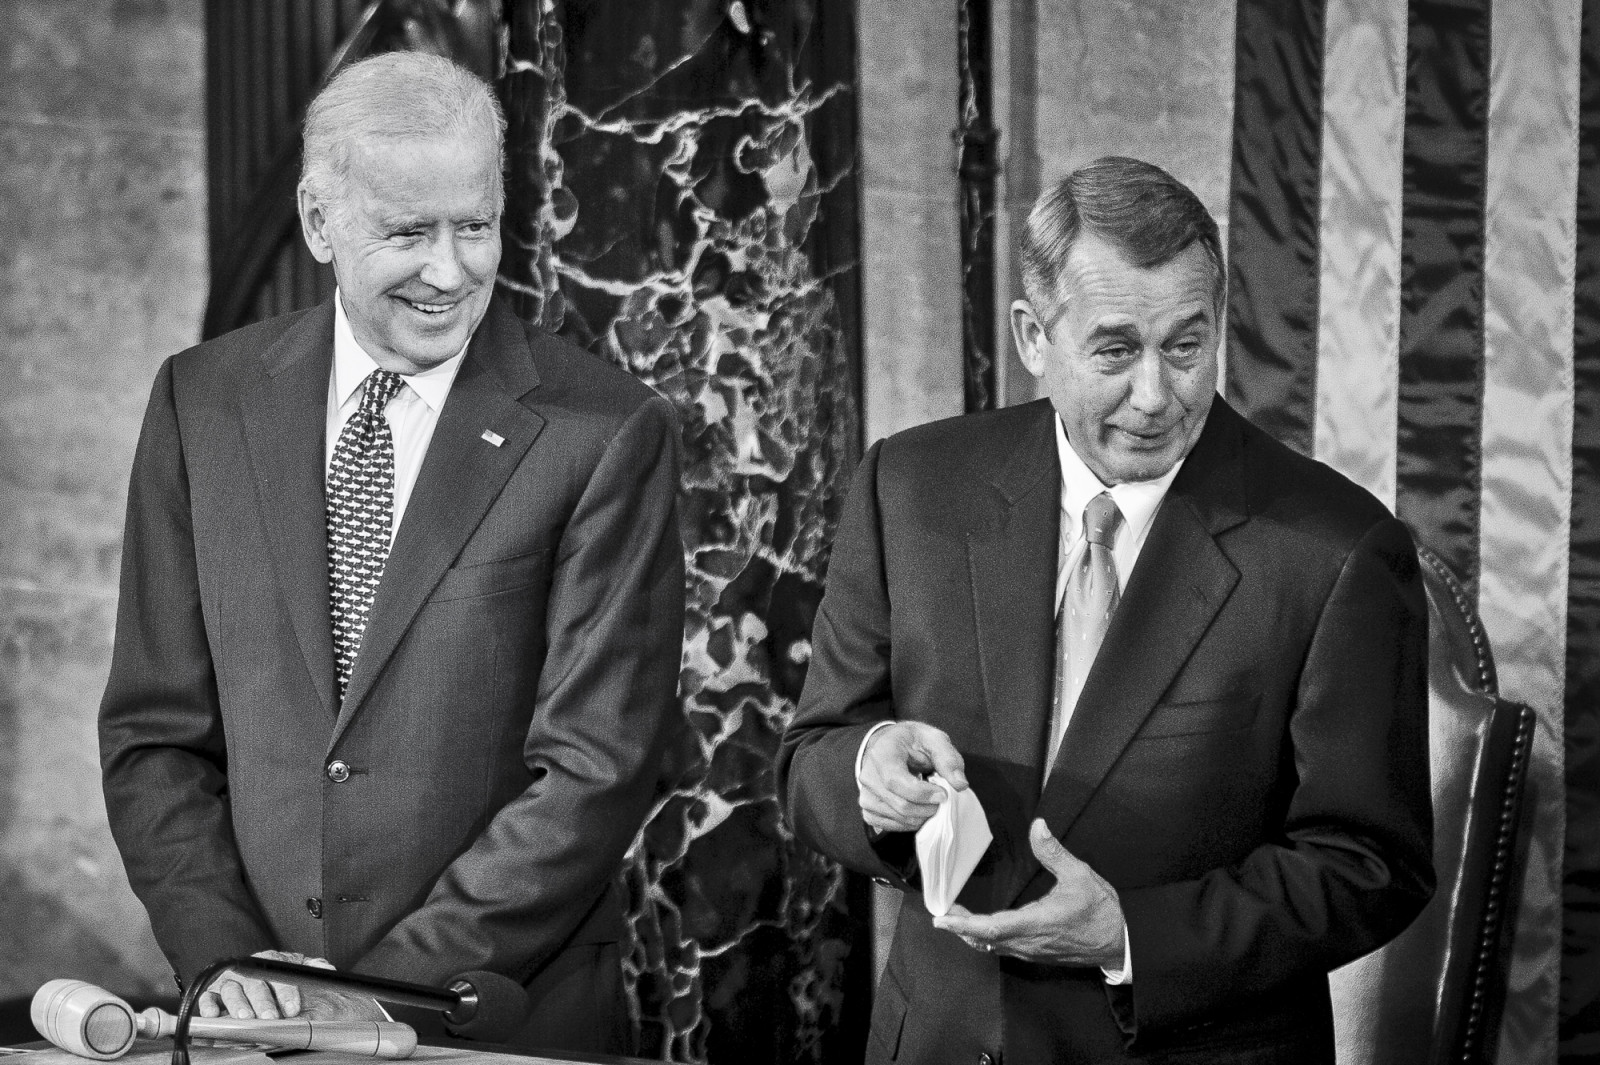 Vice President Joe Biden looks on as Speaker of the House John Boehner shows that he has a handkerchief ready for any tears he may shed as Pope Francis speaks to a joint meeting of Congress at the U.S. Capitol in Washington, District of Columbia, U.S., on Thursday, Sept. 24, 2015. Credit: Pete Marovich/Bloomberg